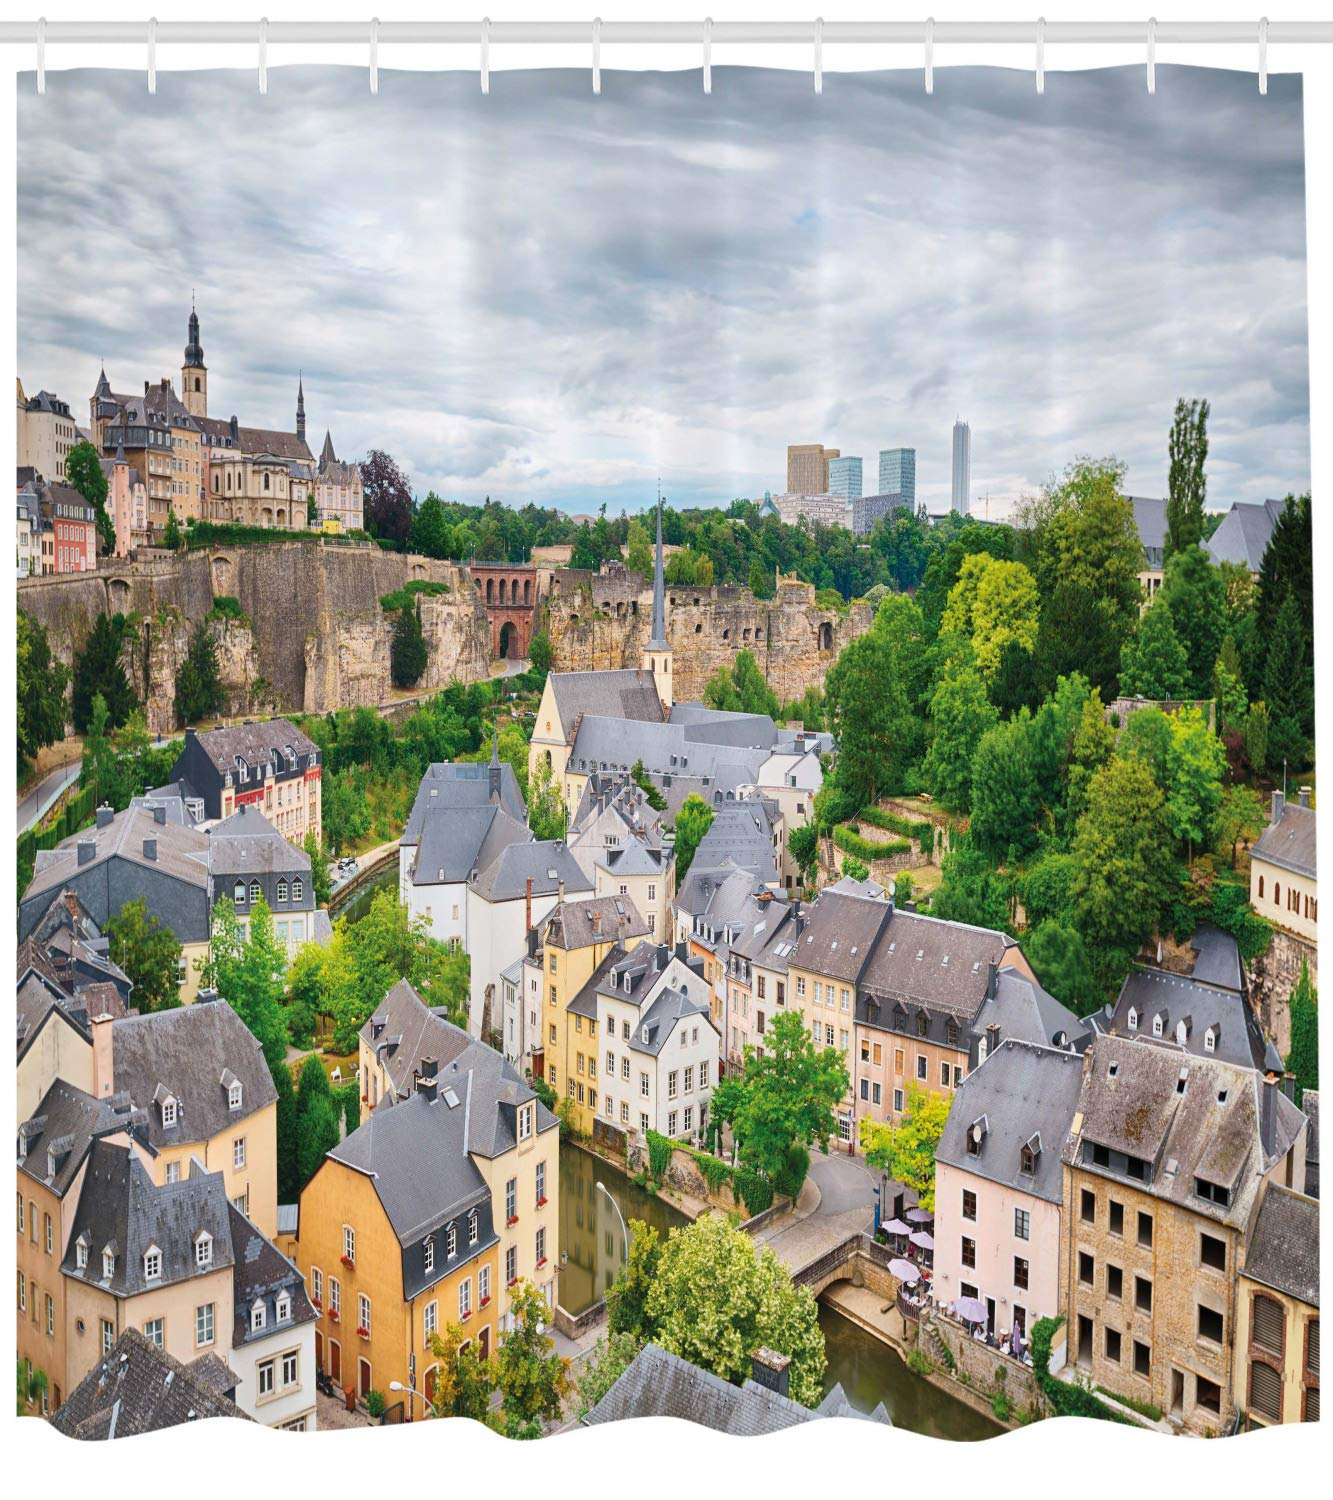 Ambesonne Landscape Shower Curtain, View of Old Town Area Luxembourg City Touristic Destination European Scenic Photo, Fabric Bathroom Decor Set with Hooks, 84 Inches Extra Long, Yellow Gray